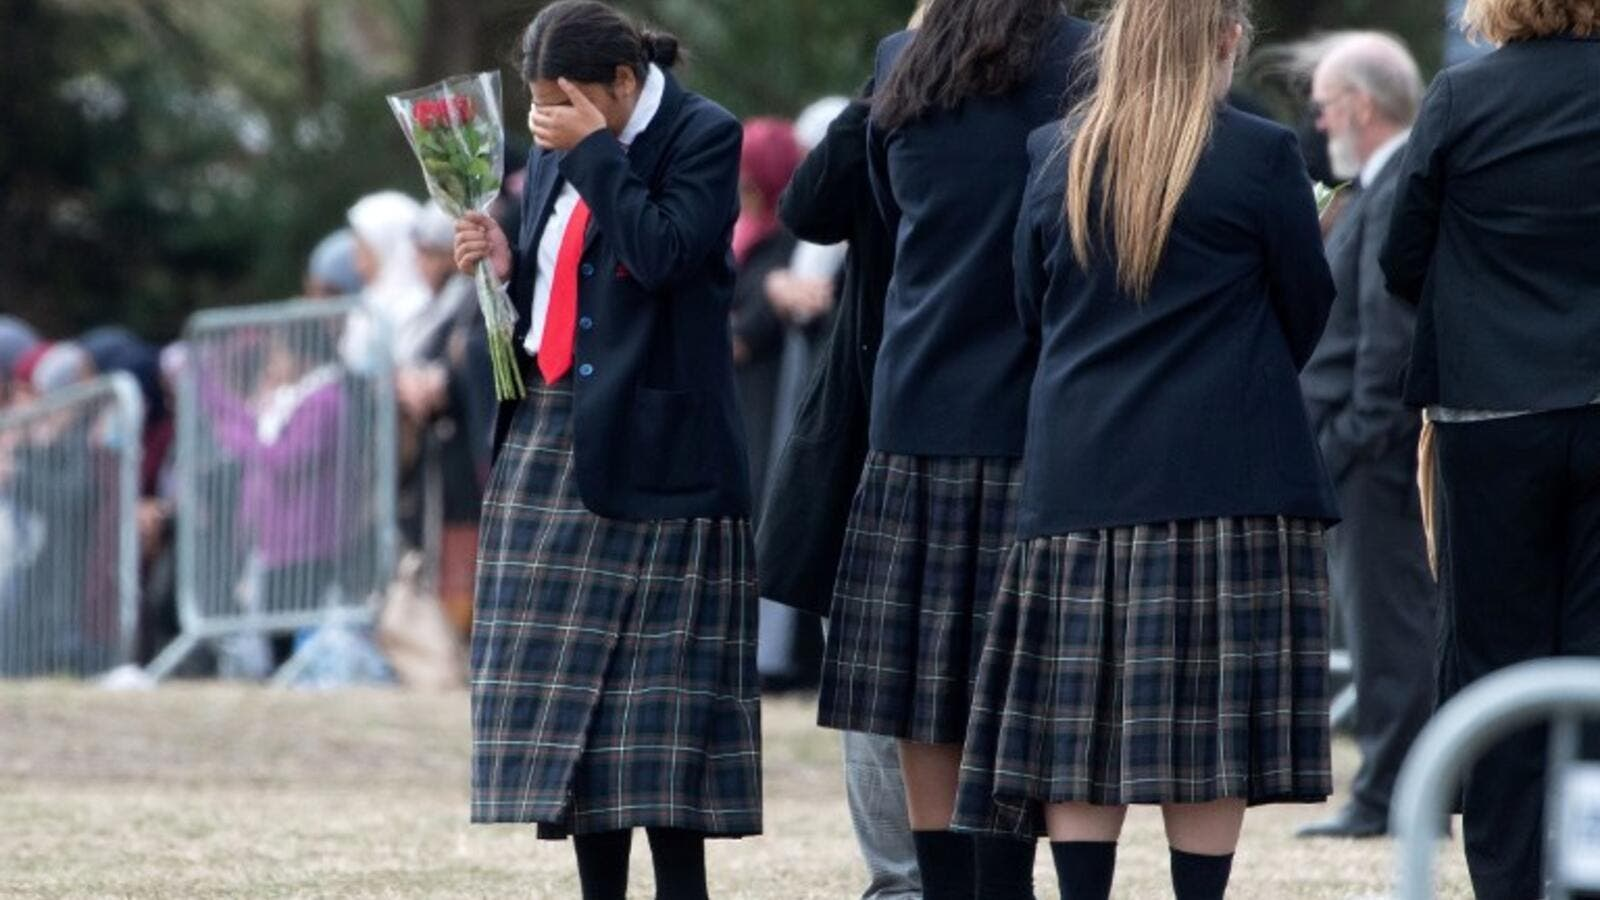 A schoolgirl gestures as mourners proceed during the funeral of Muhammad Haziq Mohd-Tarmizi at Memorial Park Cemetery in Christchurch on March 21, 2019. (AFP)